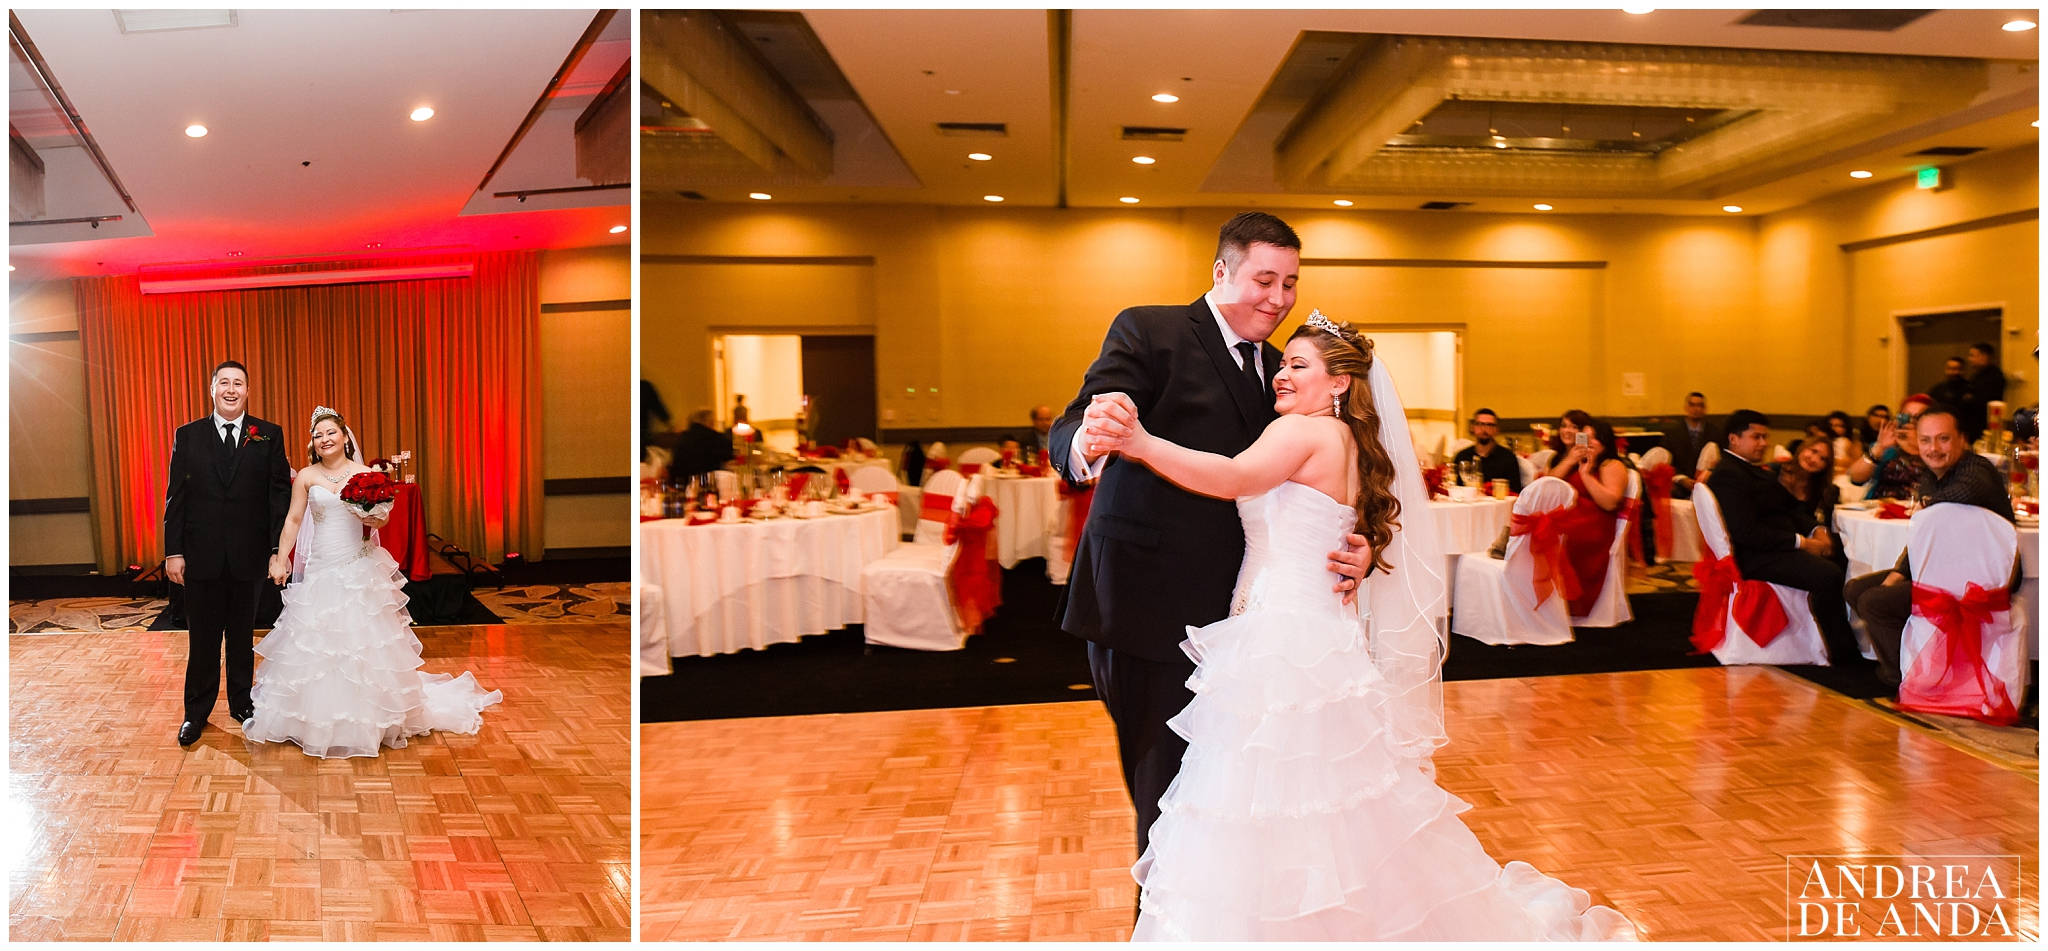 Santa Maria Wedding Photographer_ Andrea de Anda Photography__0034.jpg